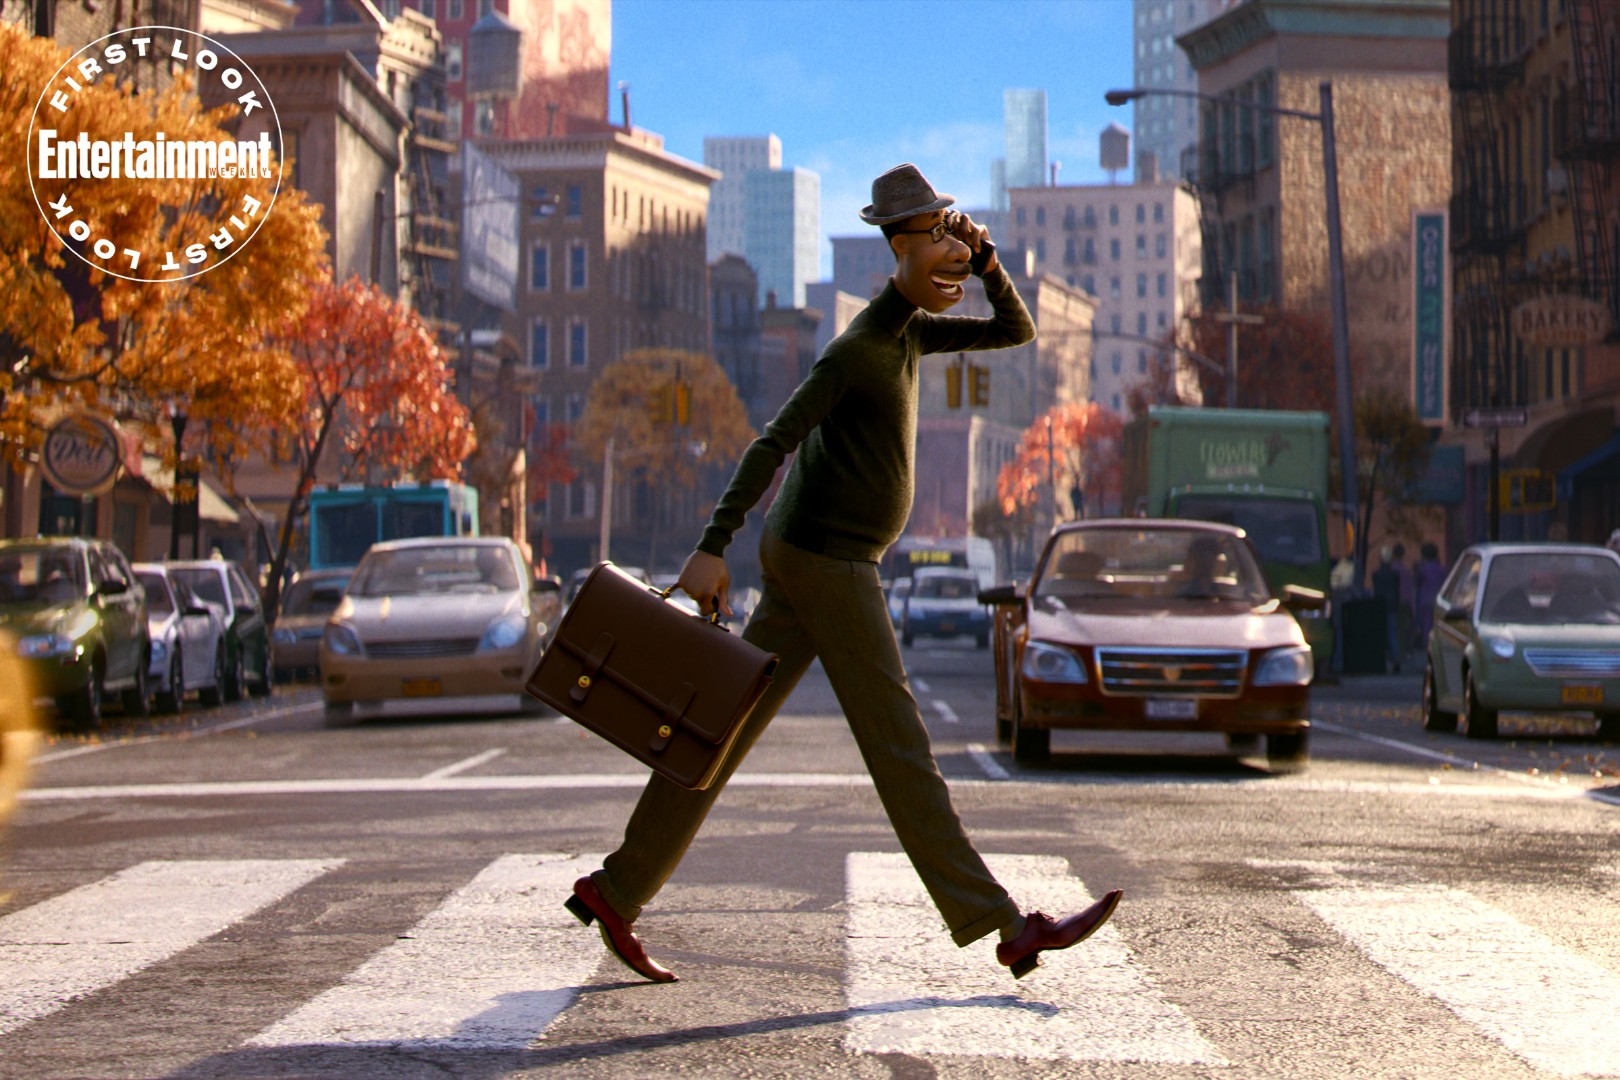 Pixar-Soul-Joe-Walking-On-Street.jpg